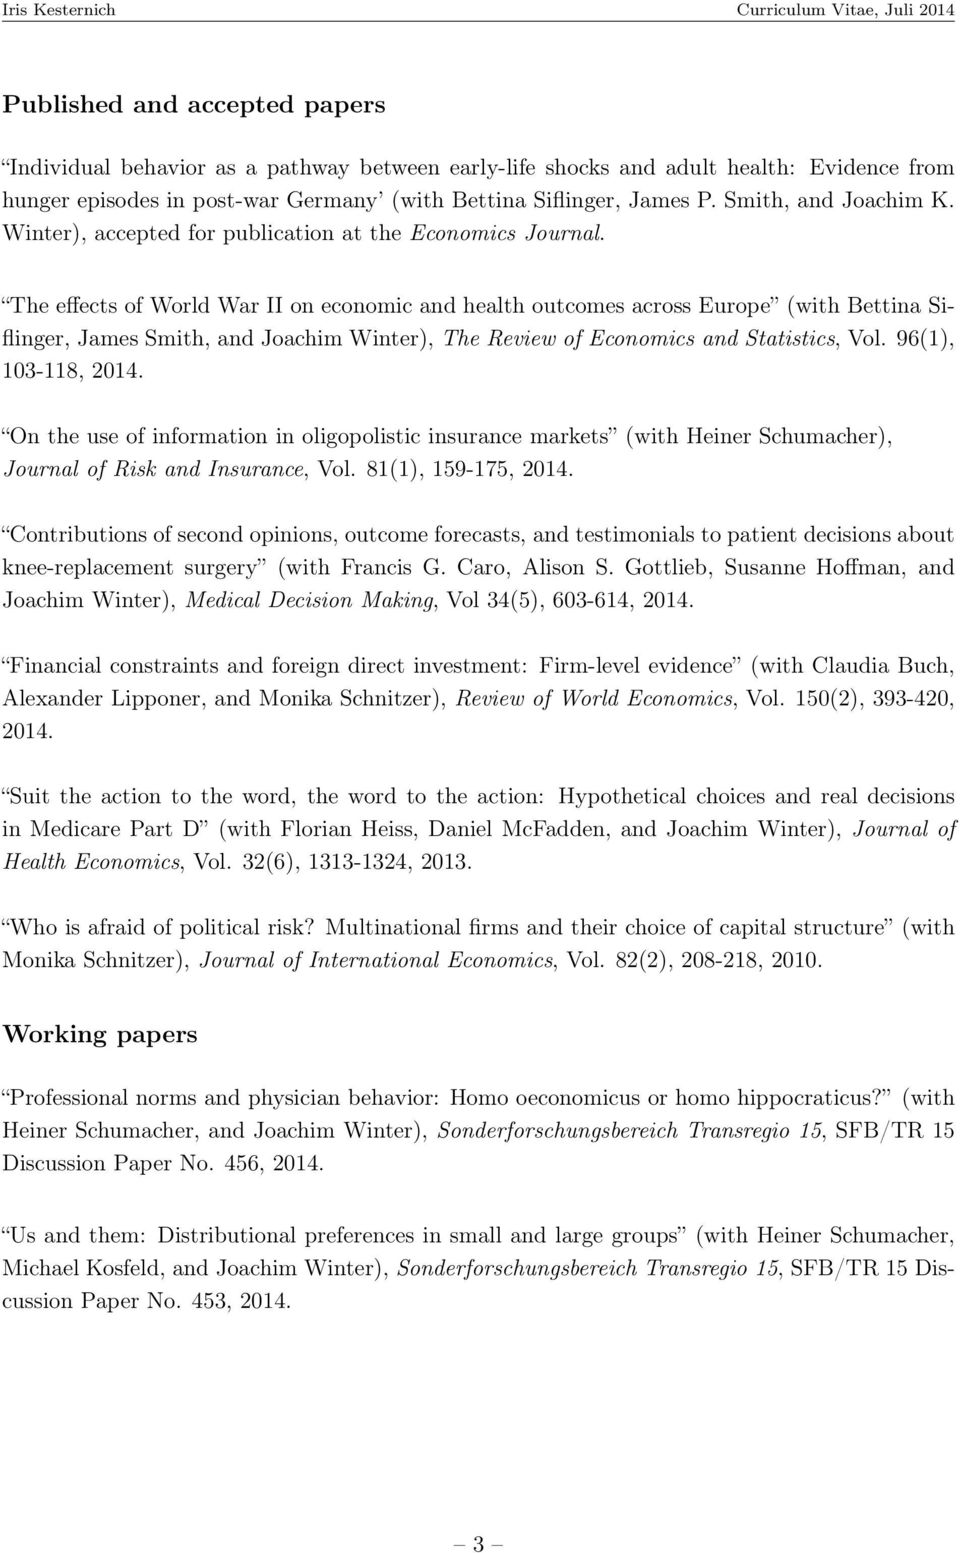 The effects of World War II on economic and health outcomes across Europe (with Bettina Siflinger, James Smith, and Joachim Winter), The Review of Economics and Statistics, Vol. 96(1), 103-118, 2014.